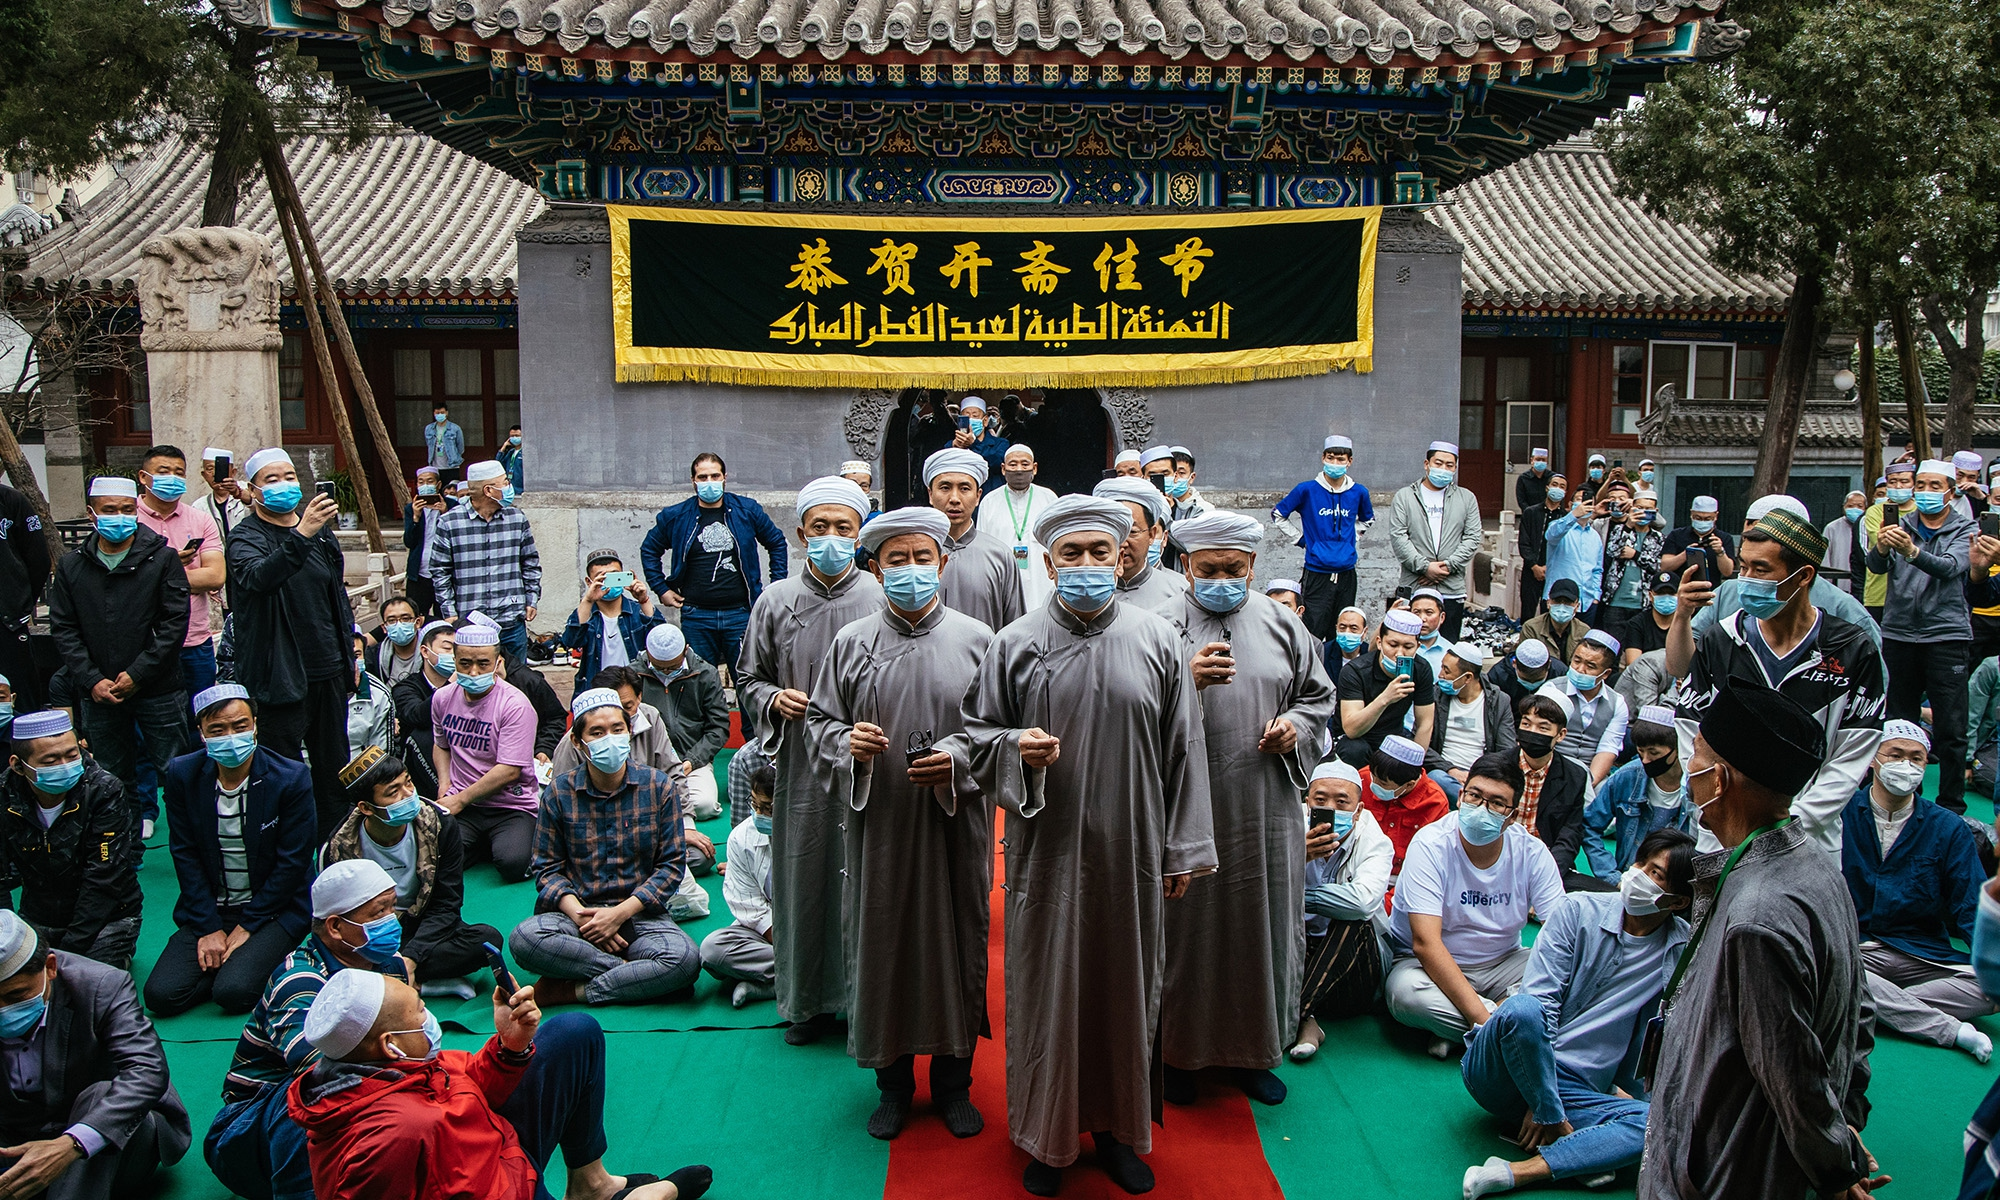 Foreign and local Muslims gathered on Thursday morning in Niujie Mosque, the largest mosque in Beijing to celebrate Eid al-Fitr, the first public celebration since the epidemic outbreak. Photo: Li Hao/GT